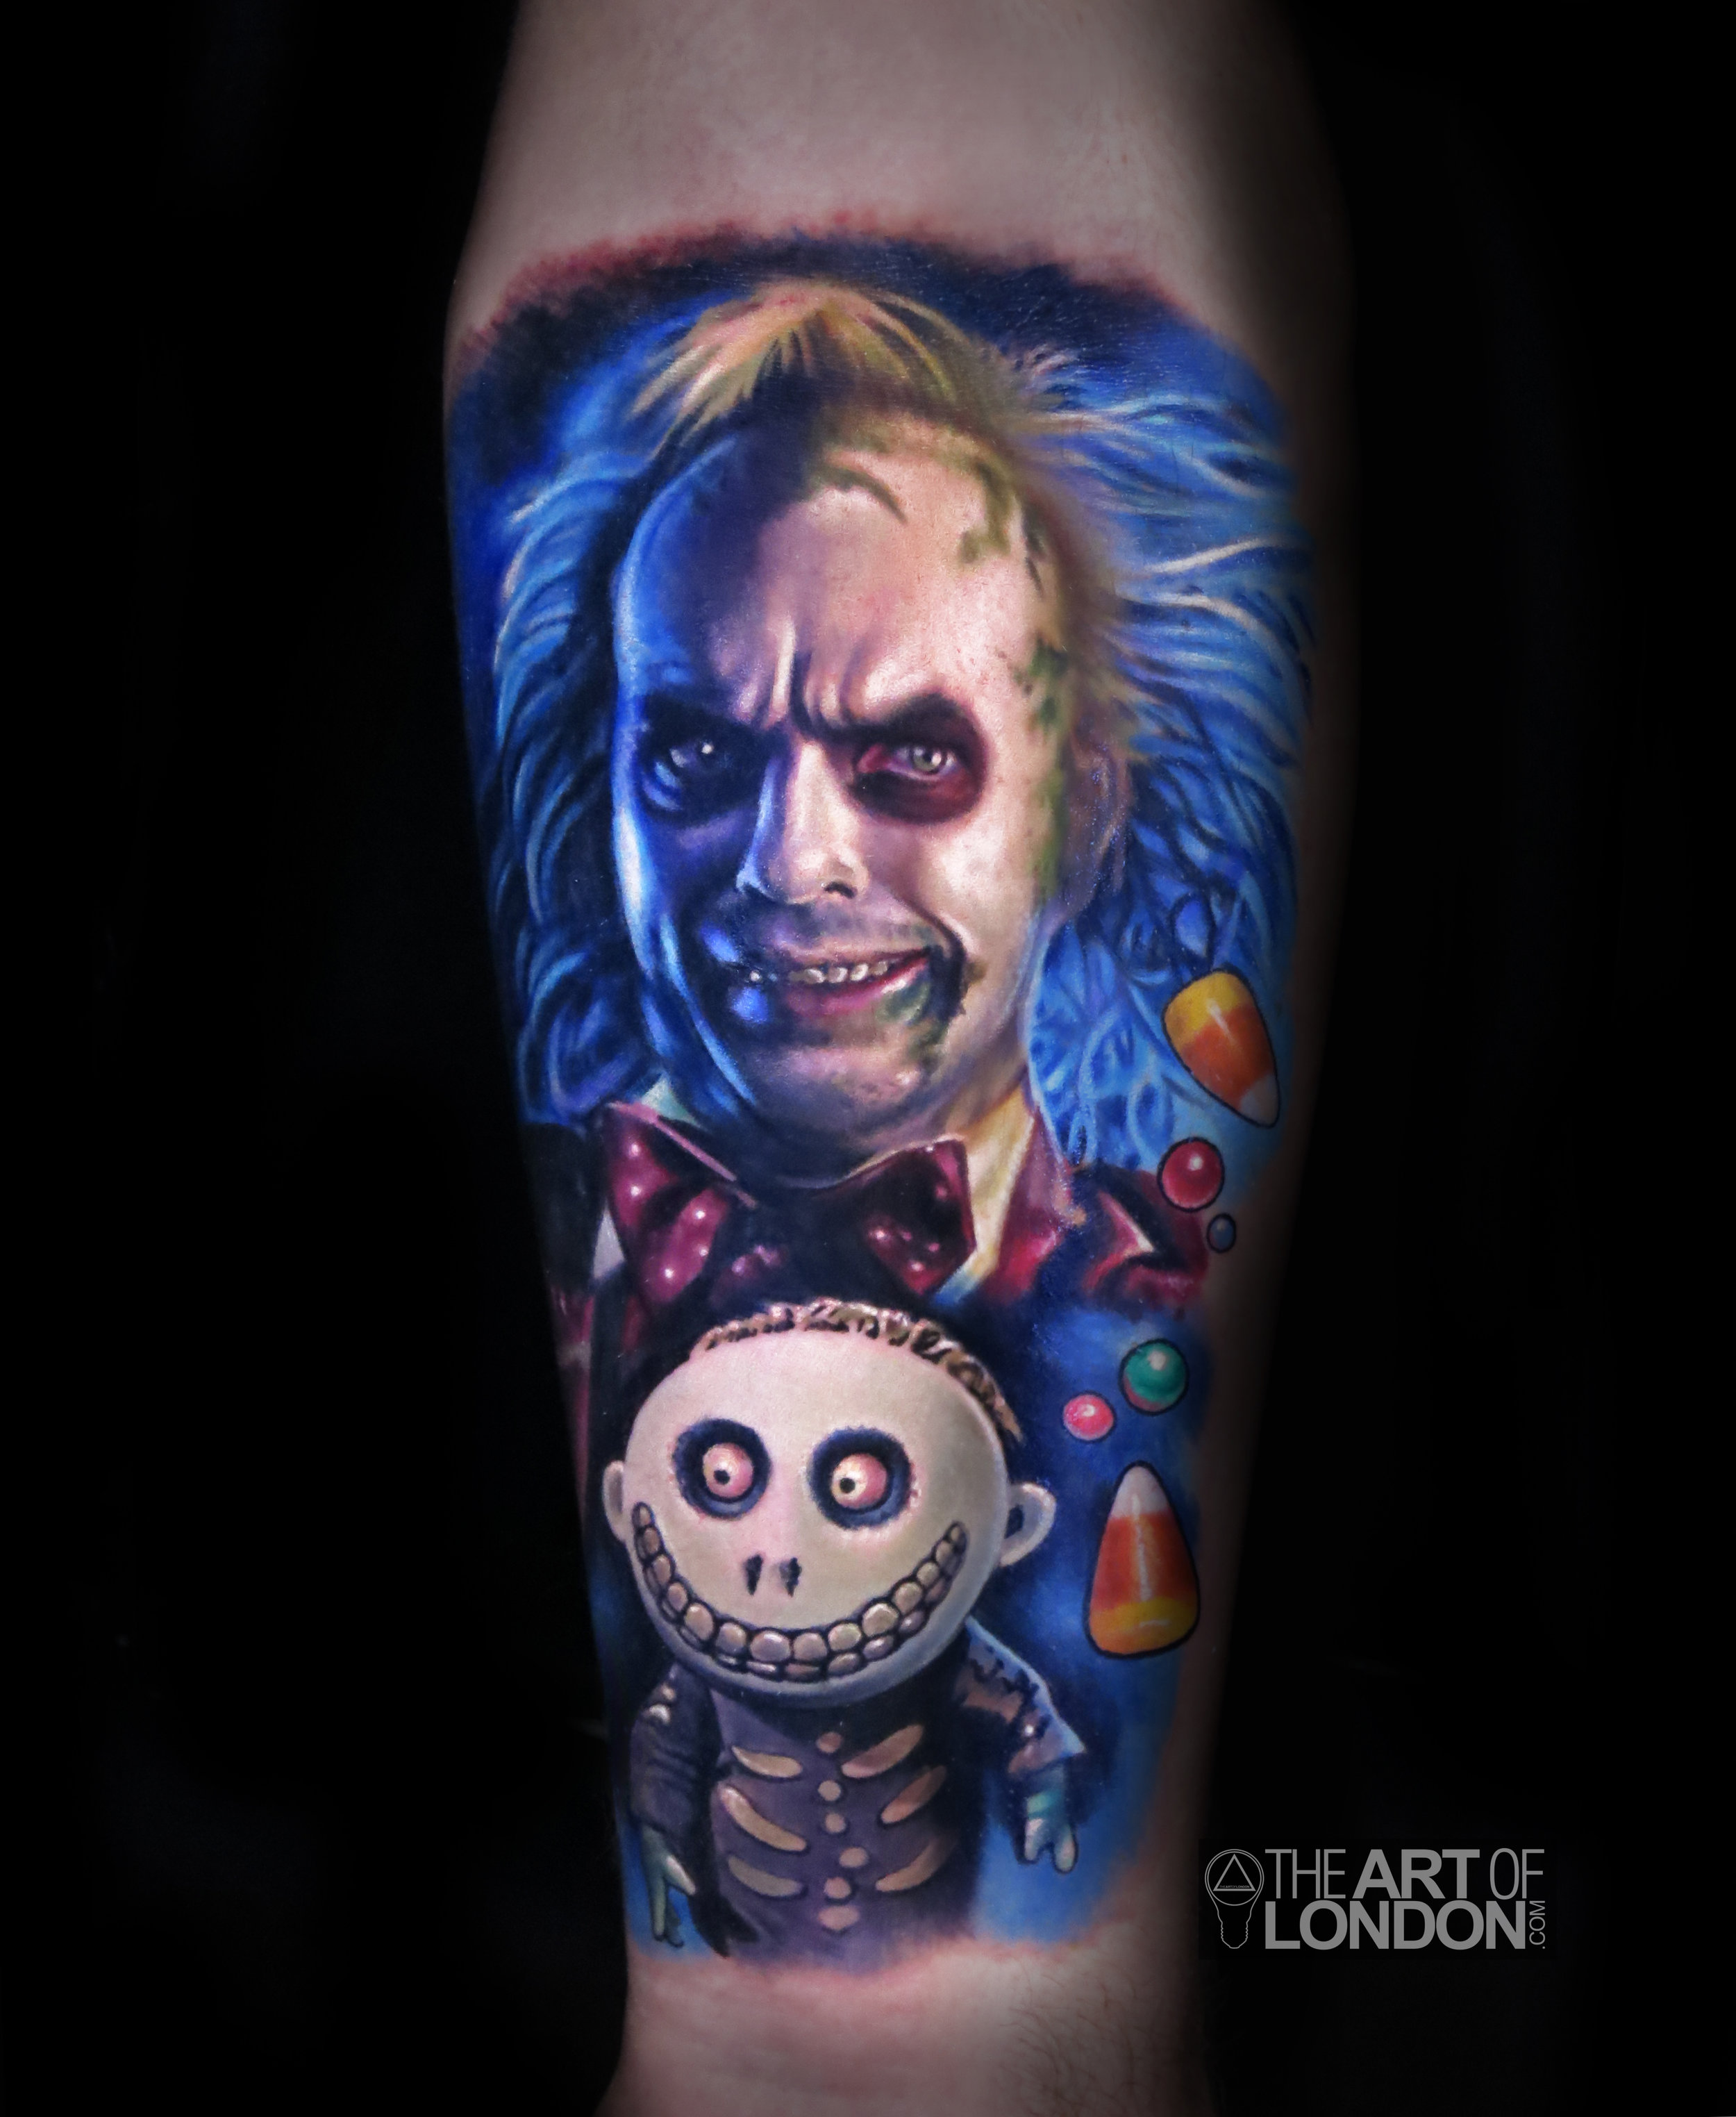 beetlejuice barrel nightmare before christmas tattoo 2.jpg